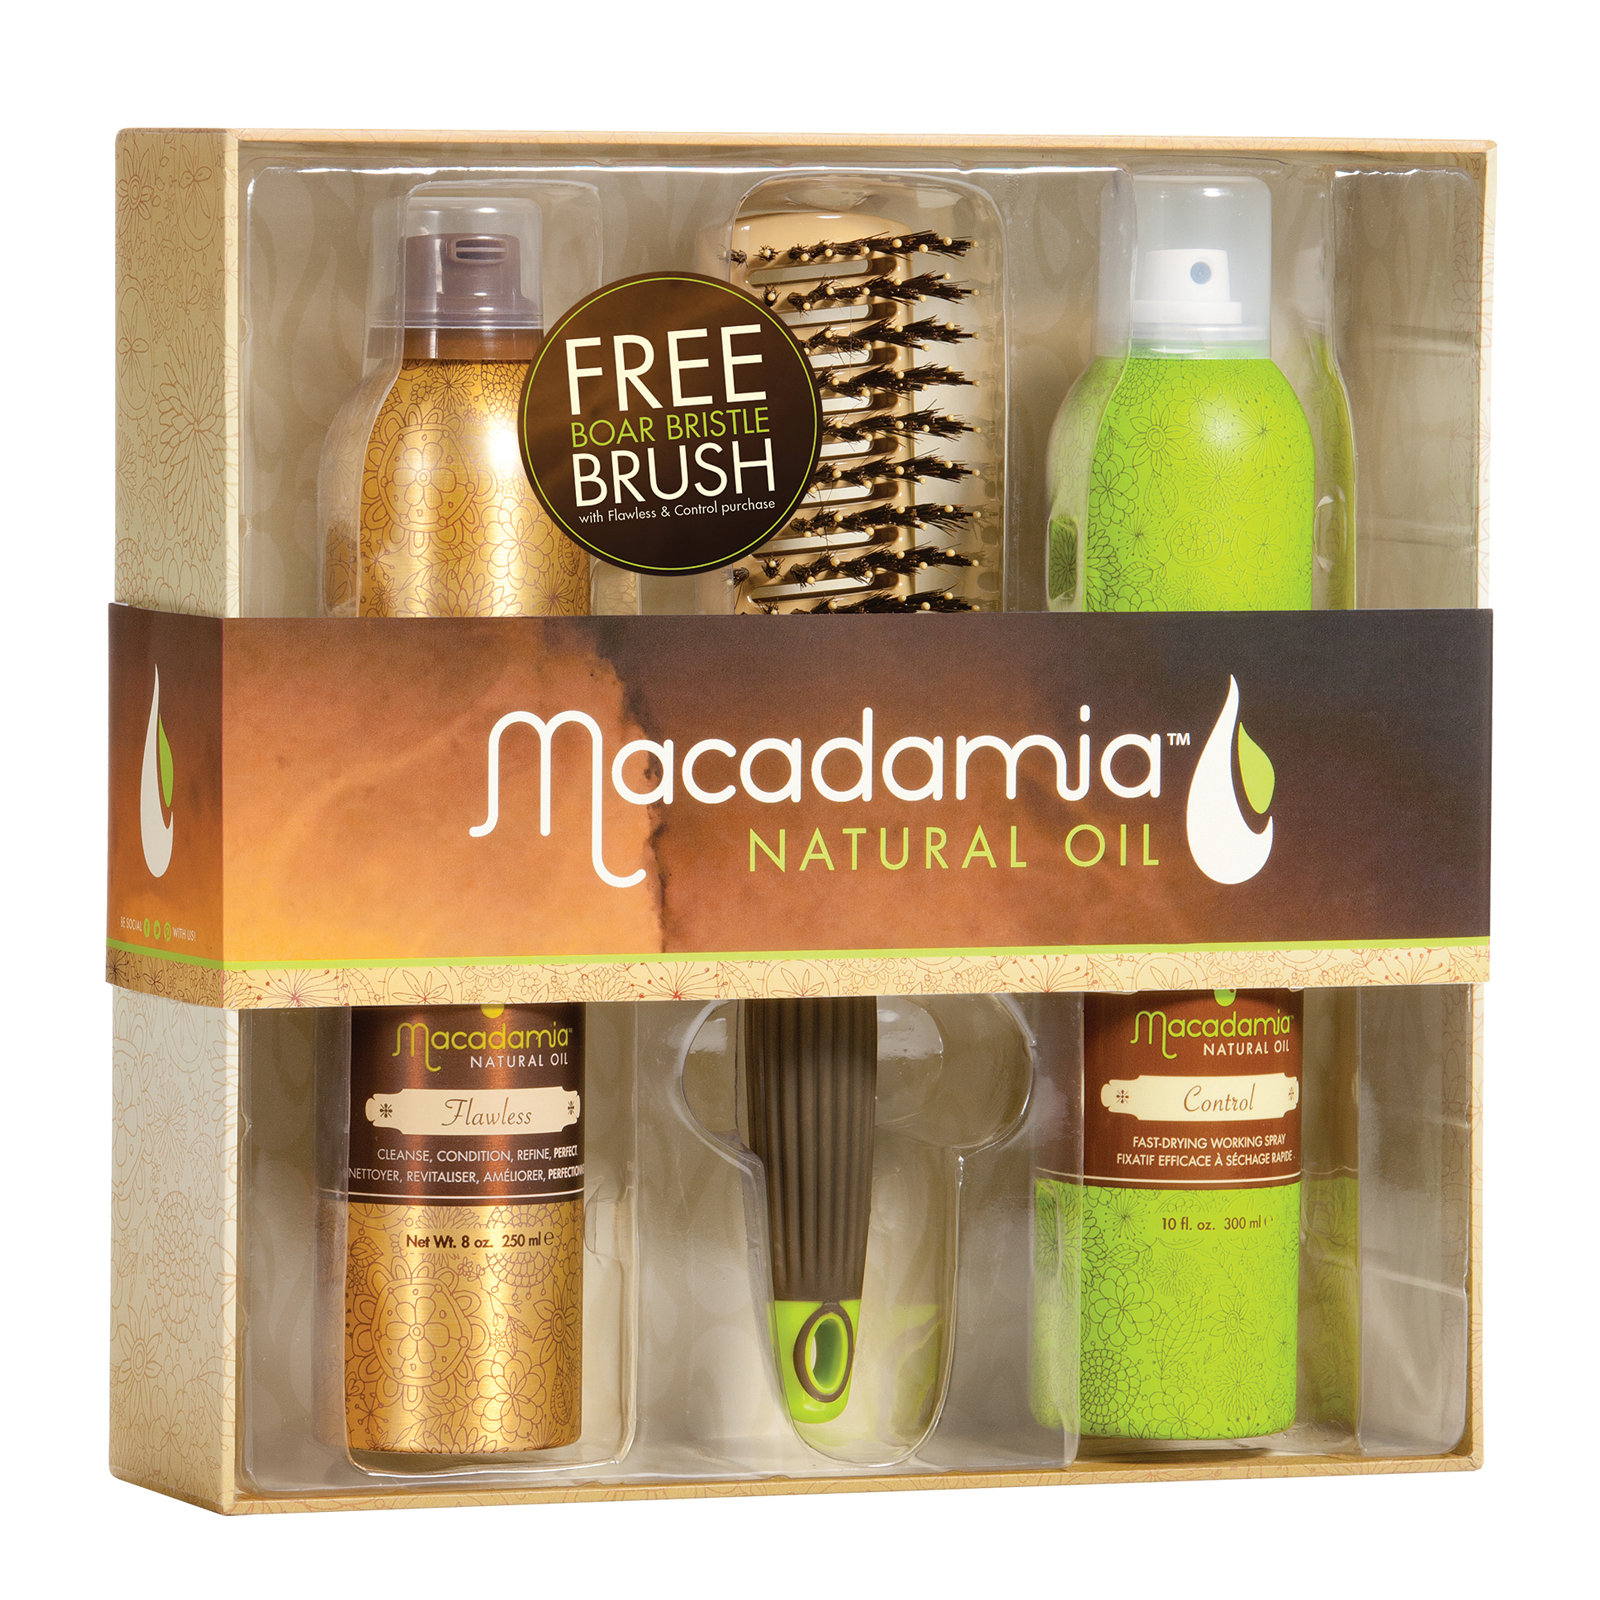 MACADAMIA Natural Oil Набор для укладки / Flawless Finish macadamia natural oil крем мусс без изъяна flawless крем мусс без изъяна flawless 250 мл